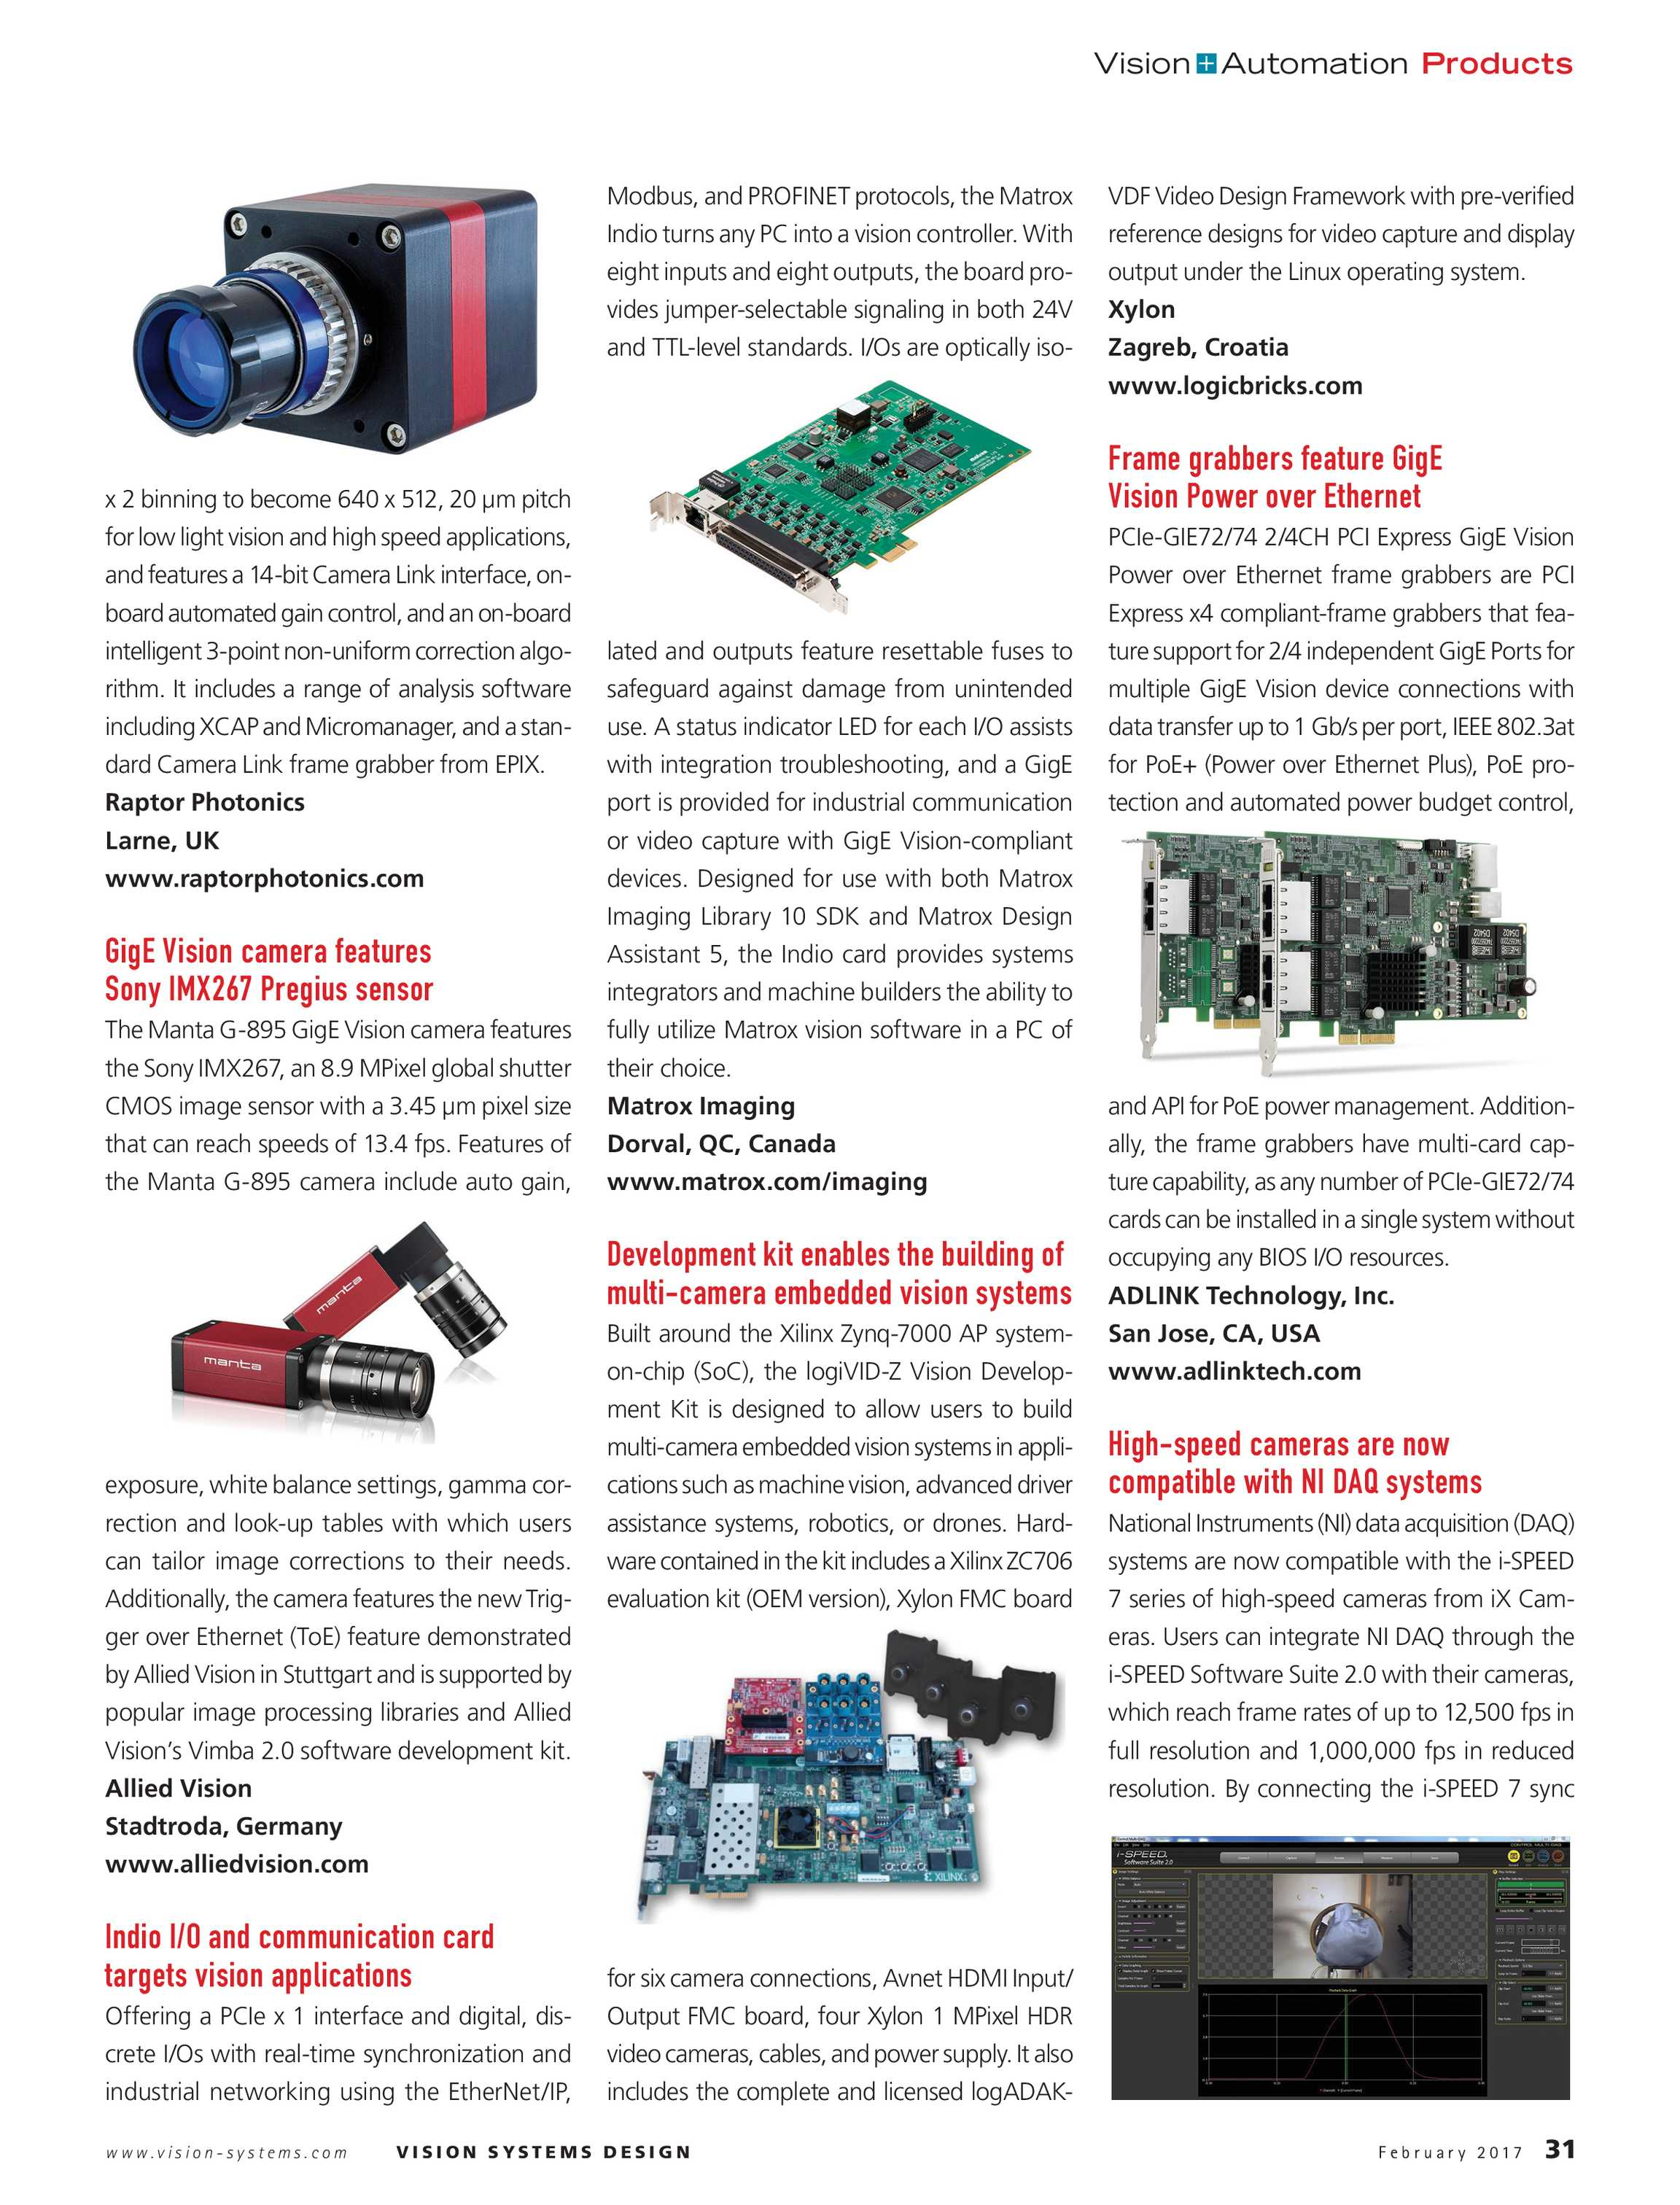 Vision Systems - February 2017 - page 31